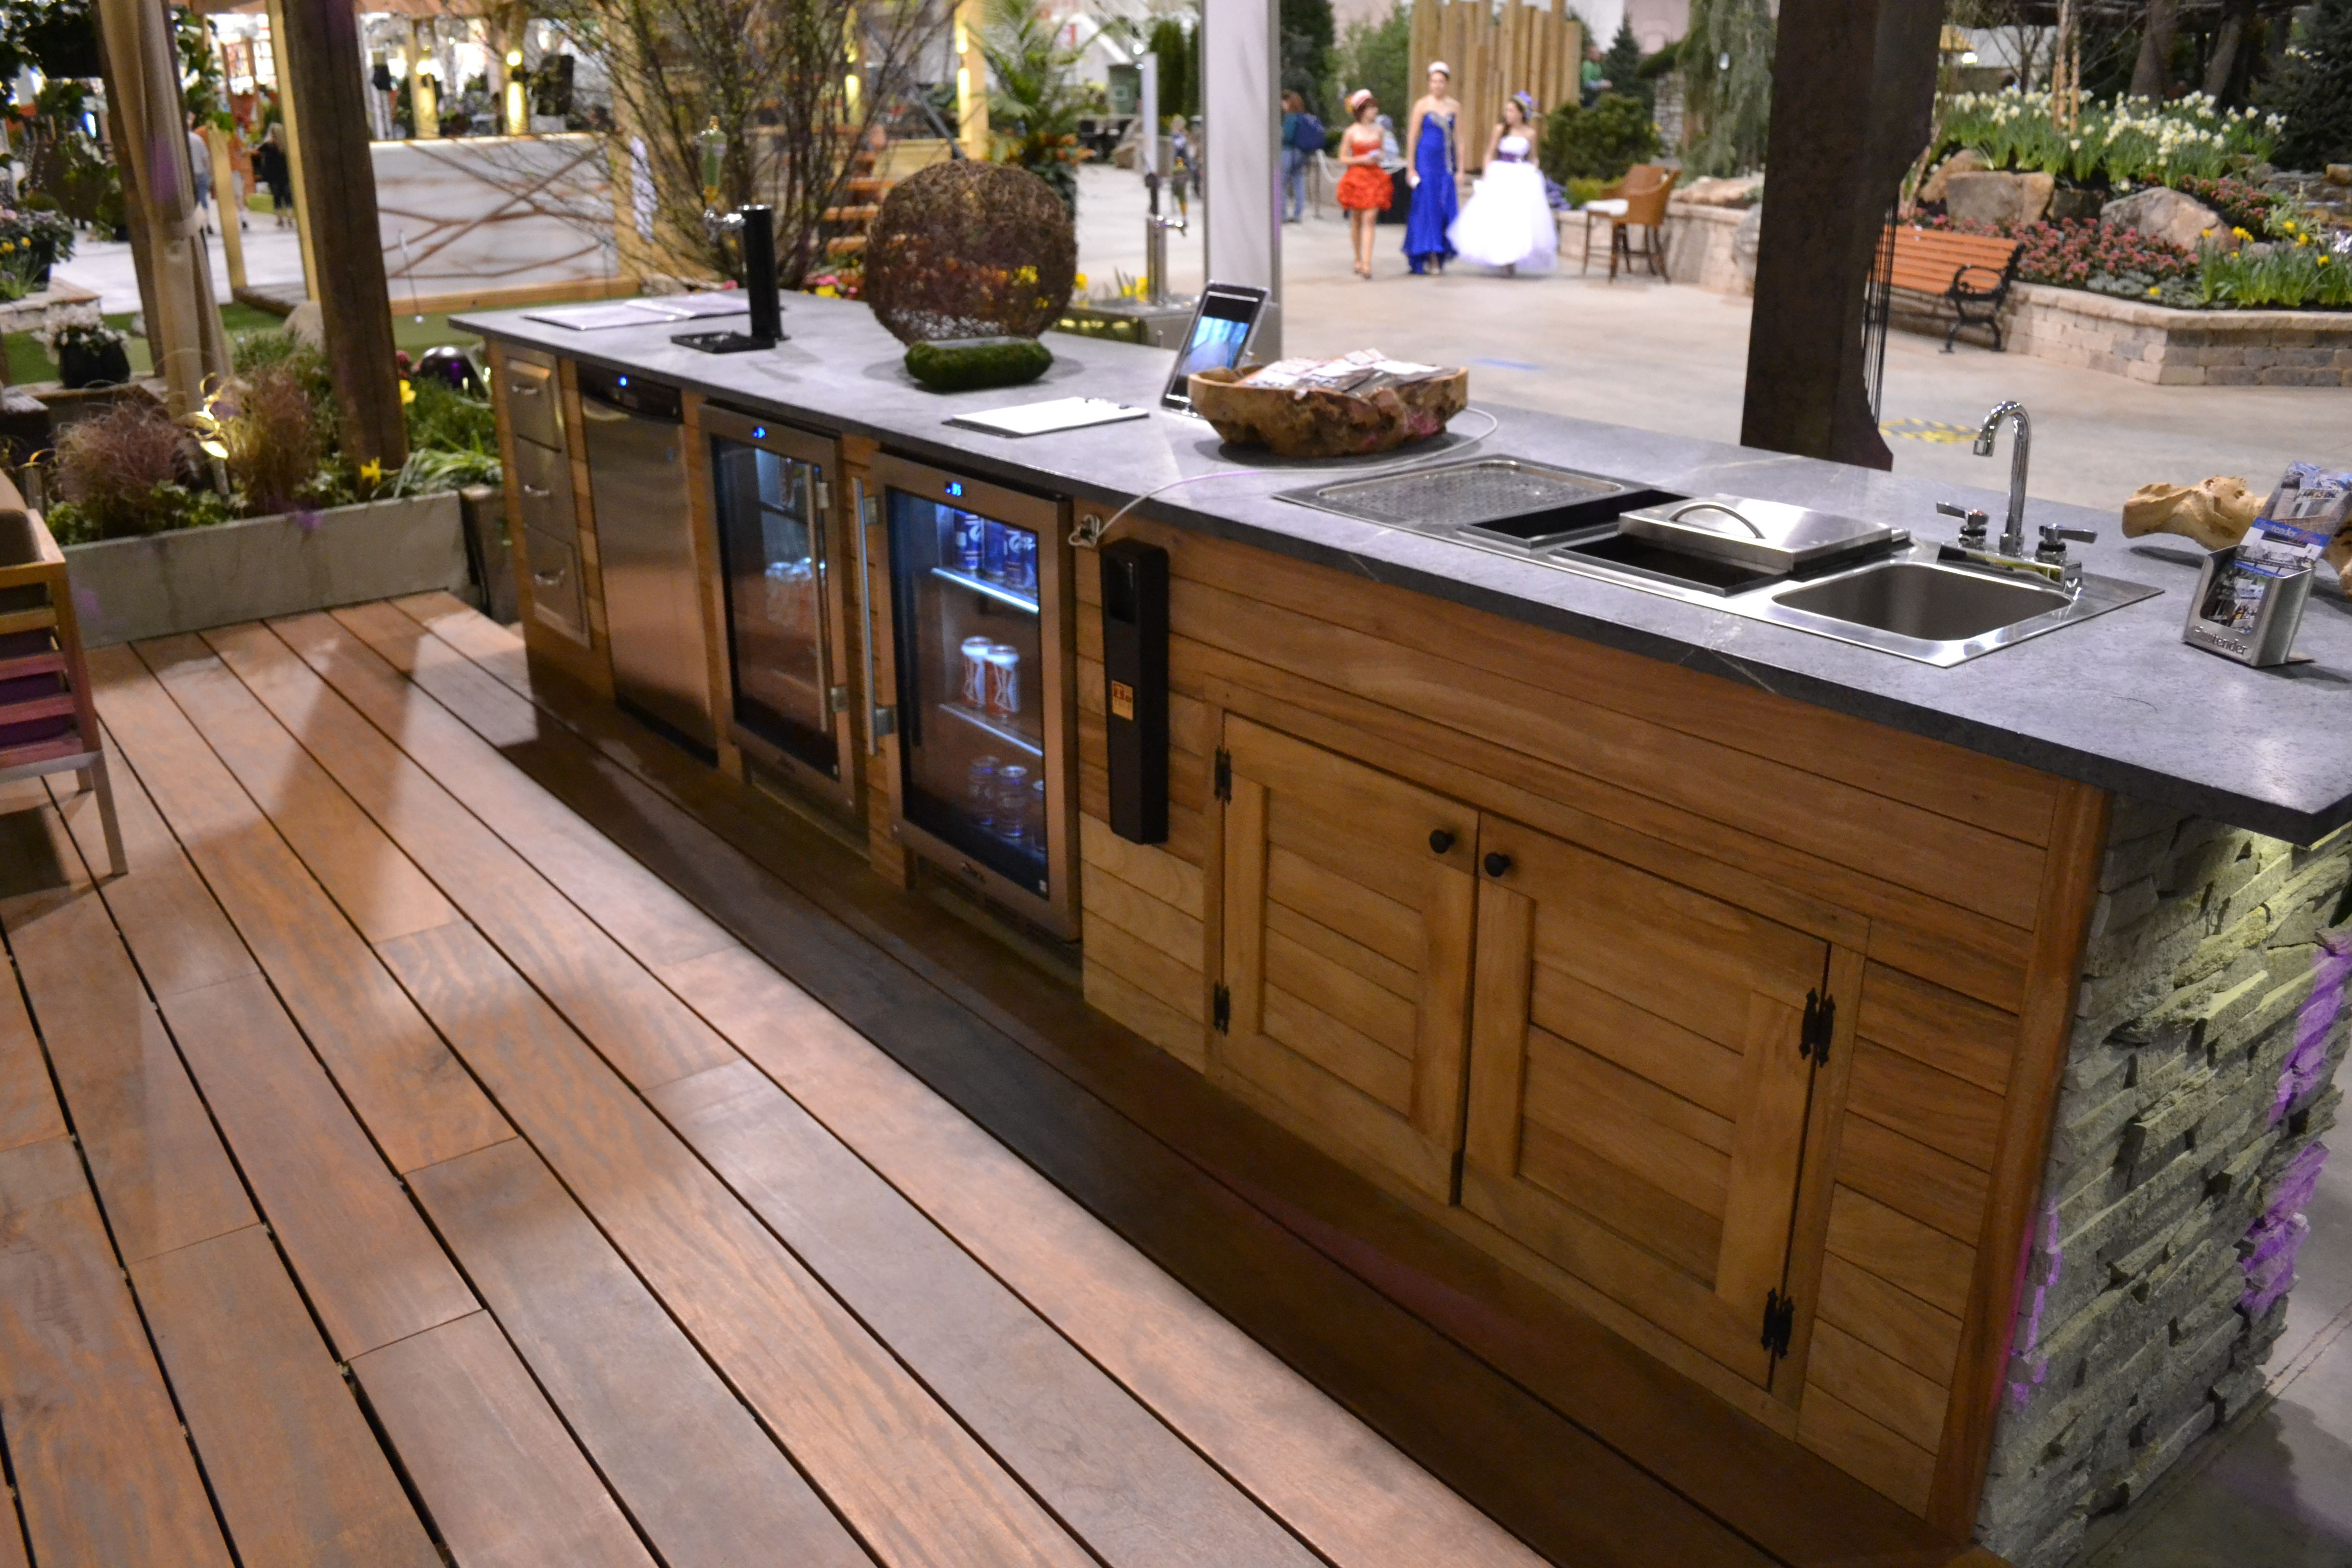 Chicago Outdoor Kitchen Glastender Sink with condiment tray and